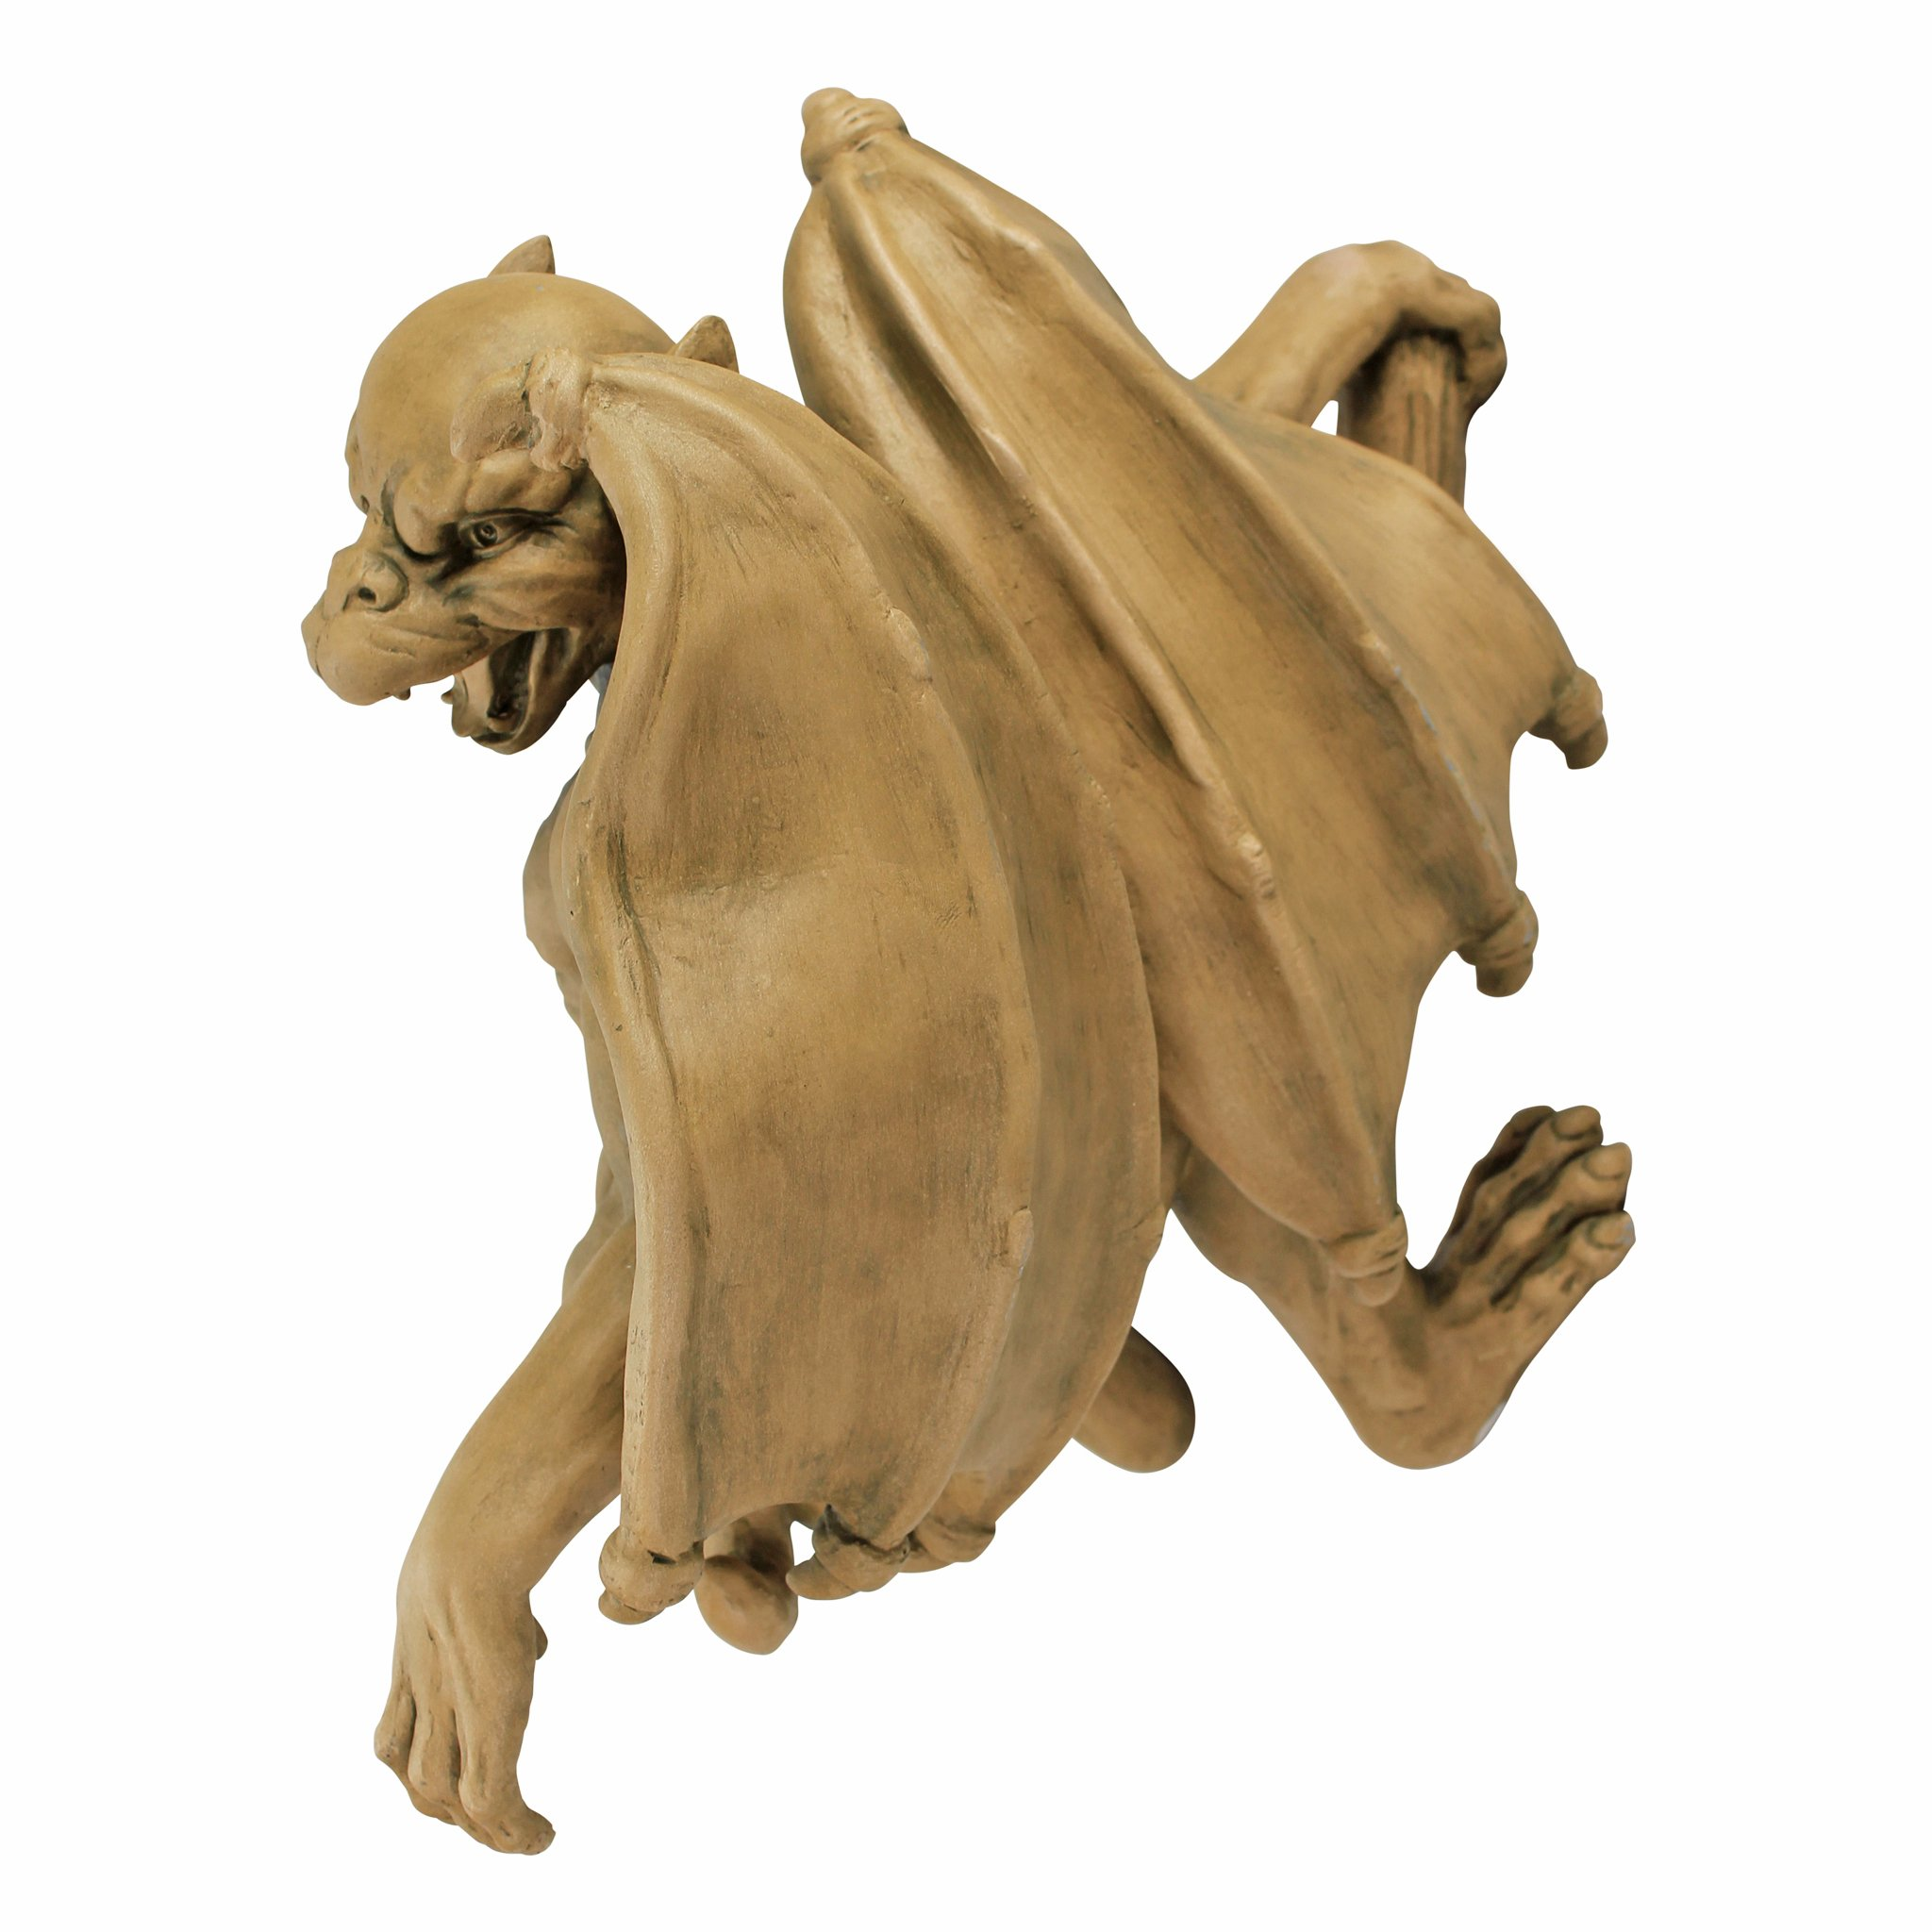 Design Toscano Gaston, the Gothic Gargoyle Climber Sculpture - Large